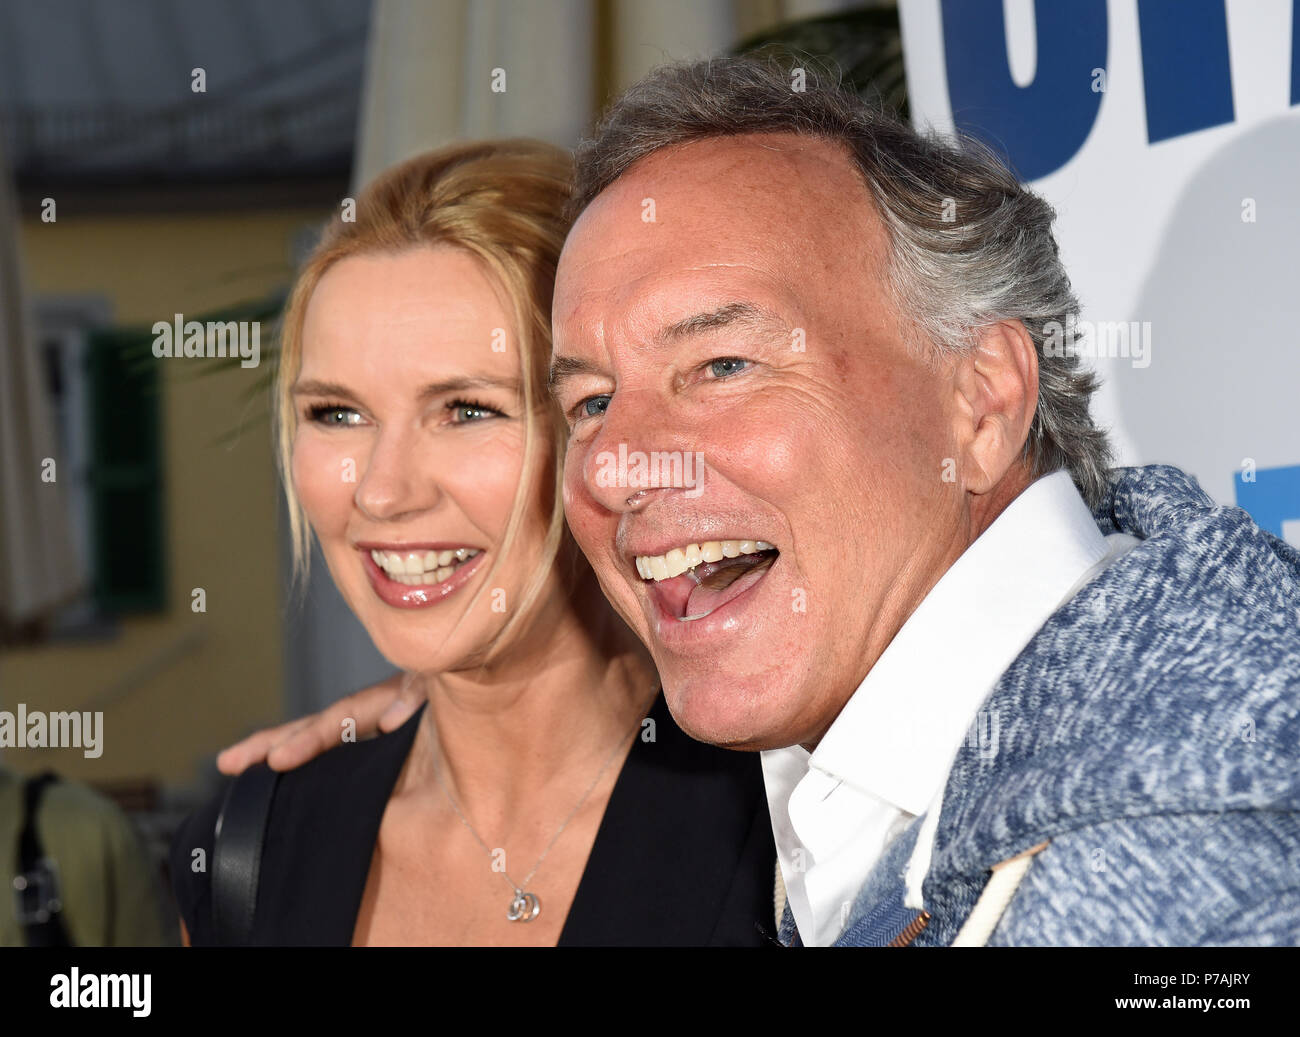 Munich, Germany. 02nd July, 2018. Actress Veronica Ferrs and Nico Hofmann, CEO of UFA, smiling at the reception on the occasion of Filmfest Munich at Cafe Reitschule. Credit: Ursula Düren/dpa/Alamy Live News - Stock Image